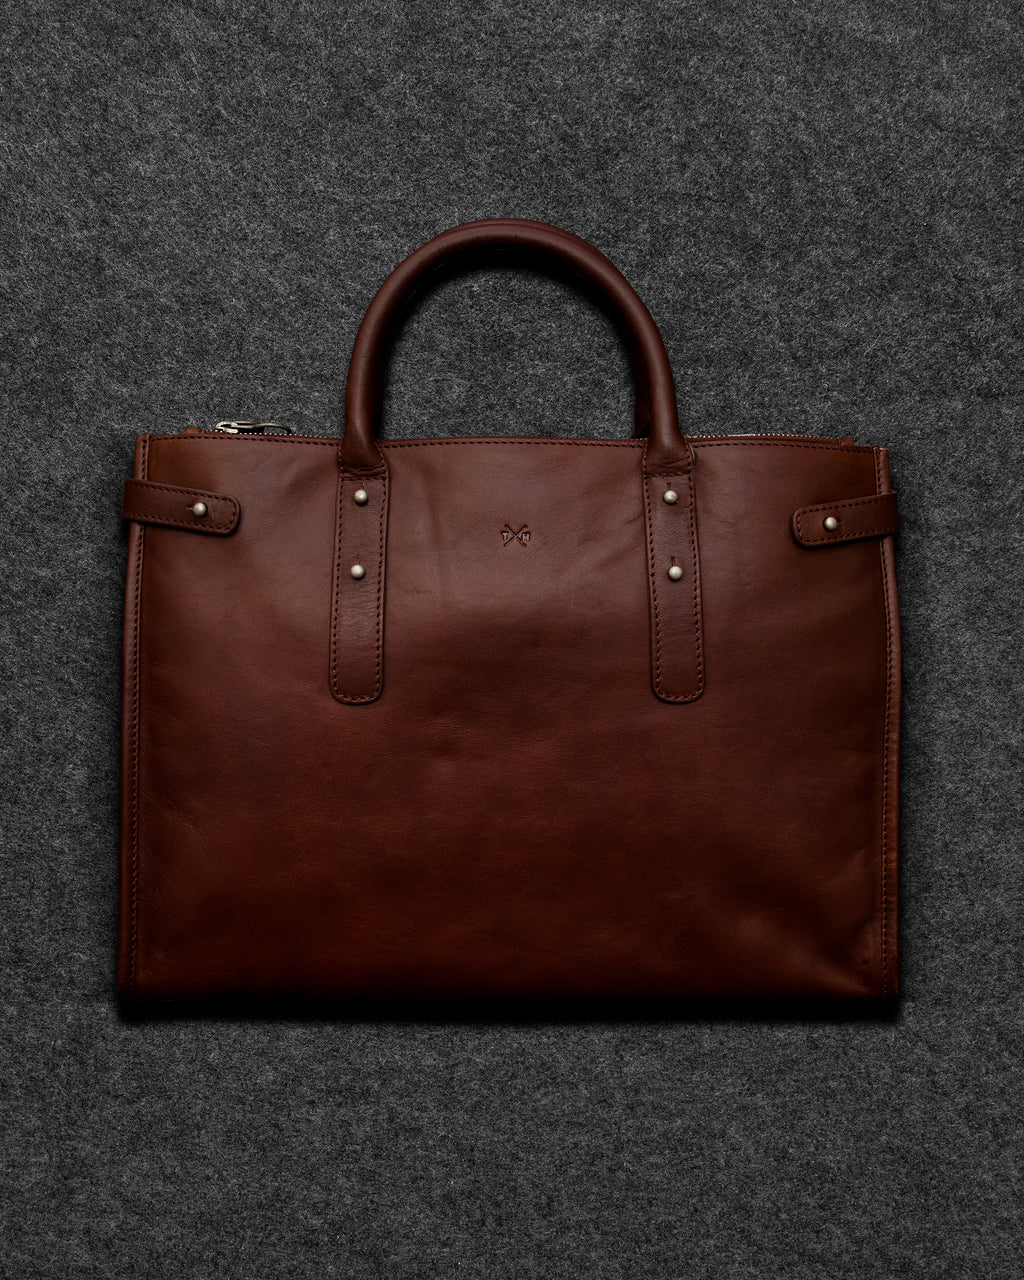 Tudor Leather Tote Bag